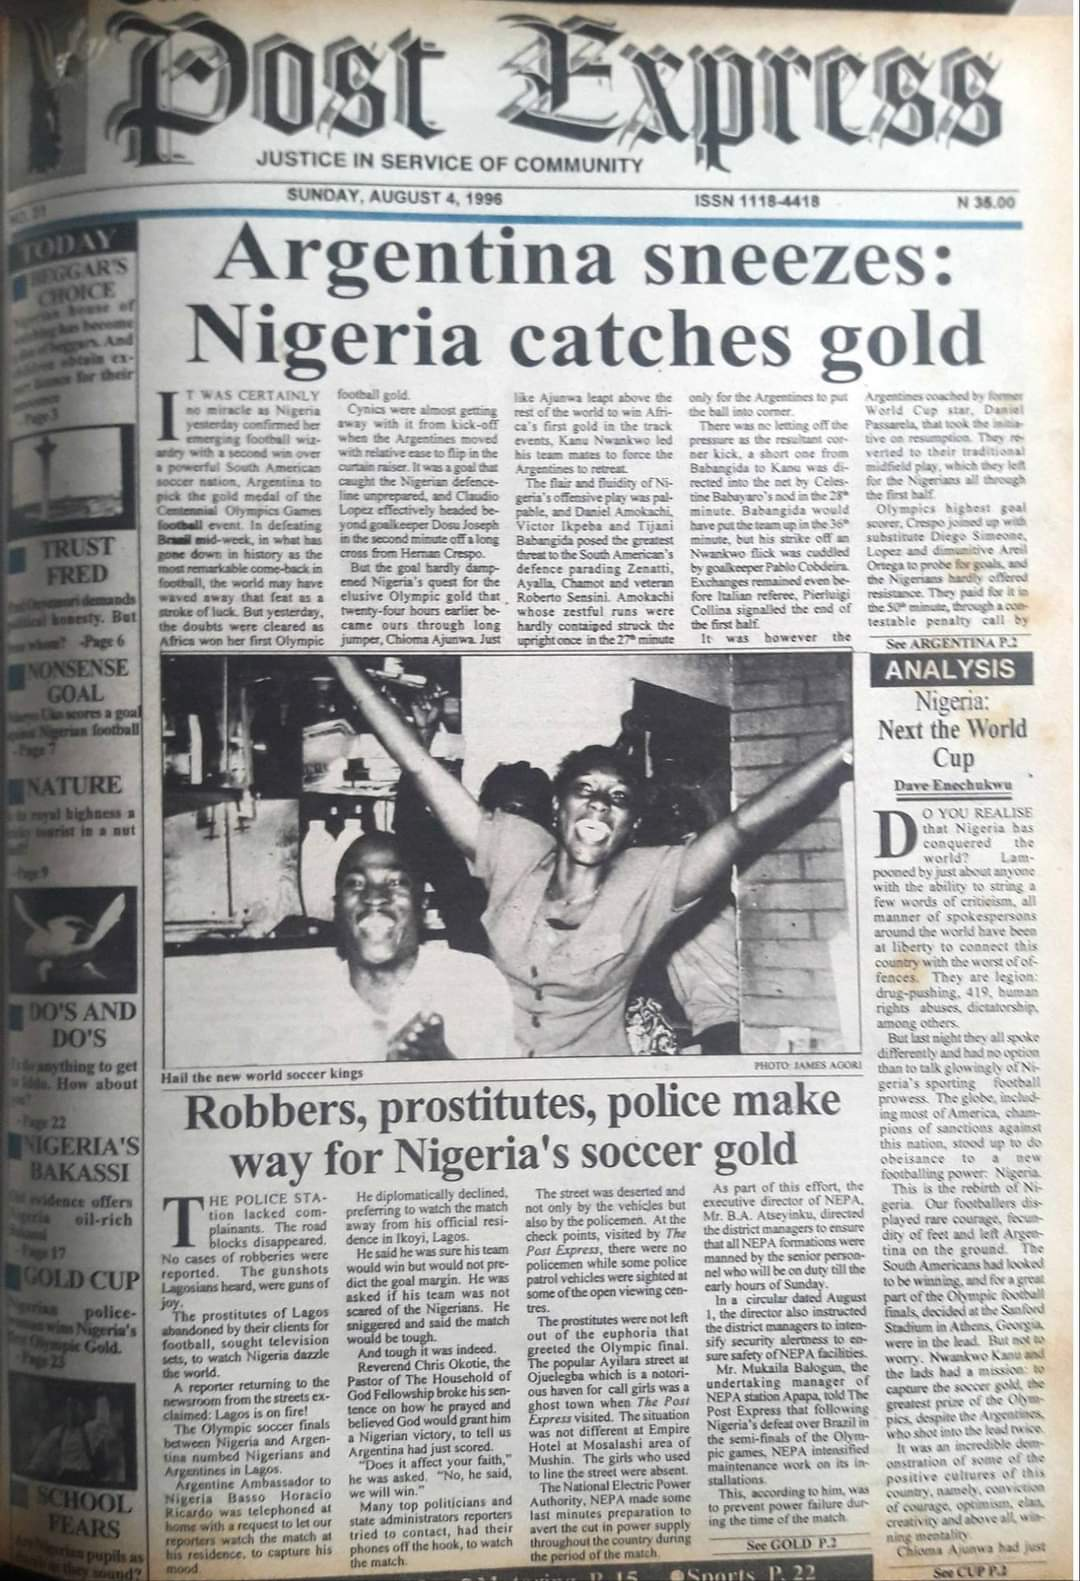 """""""Argentina sneezes, Nigeria catches gold"""" was the glorious banner headline of a 1996 edition of Post Express Newspaper after the Nigeria defeated the Albiceleste of Argentina 3:2 at the Atlanta '96 Olympic men's football final to clinch gold, the first African to do so. Nigeria had earlier defeated Brazil in the semifinal on golden rule (Credit: Yusuf Akinpelu)."""